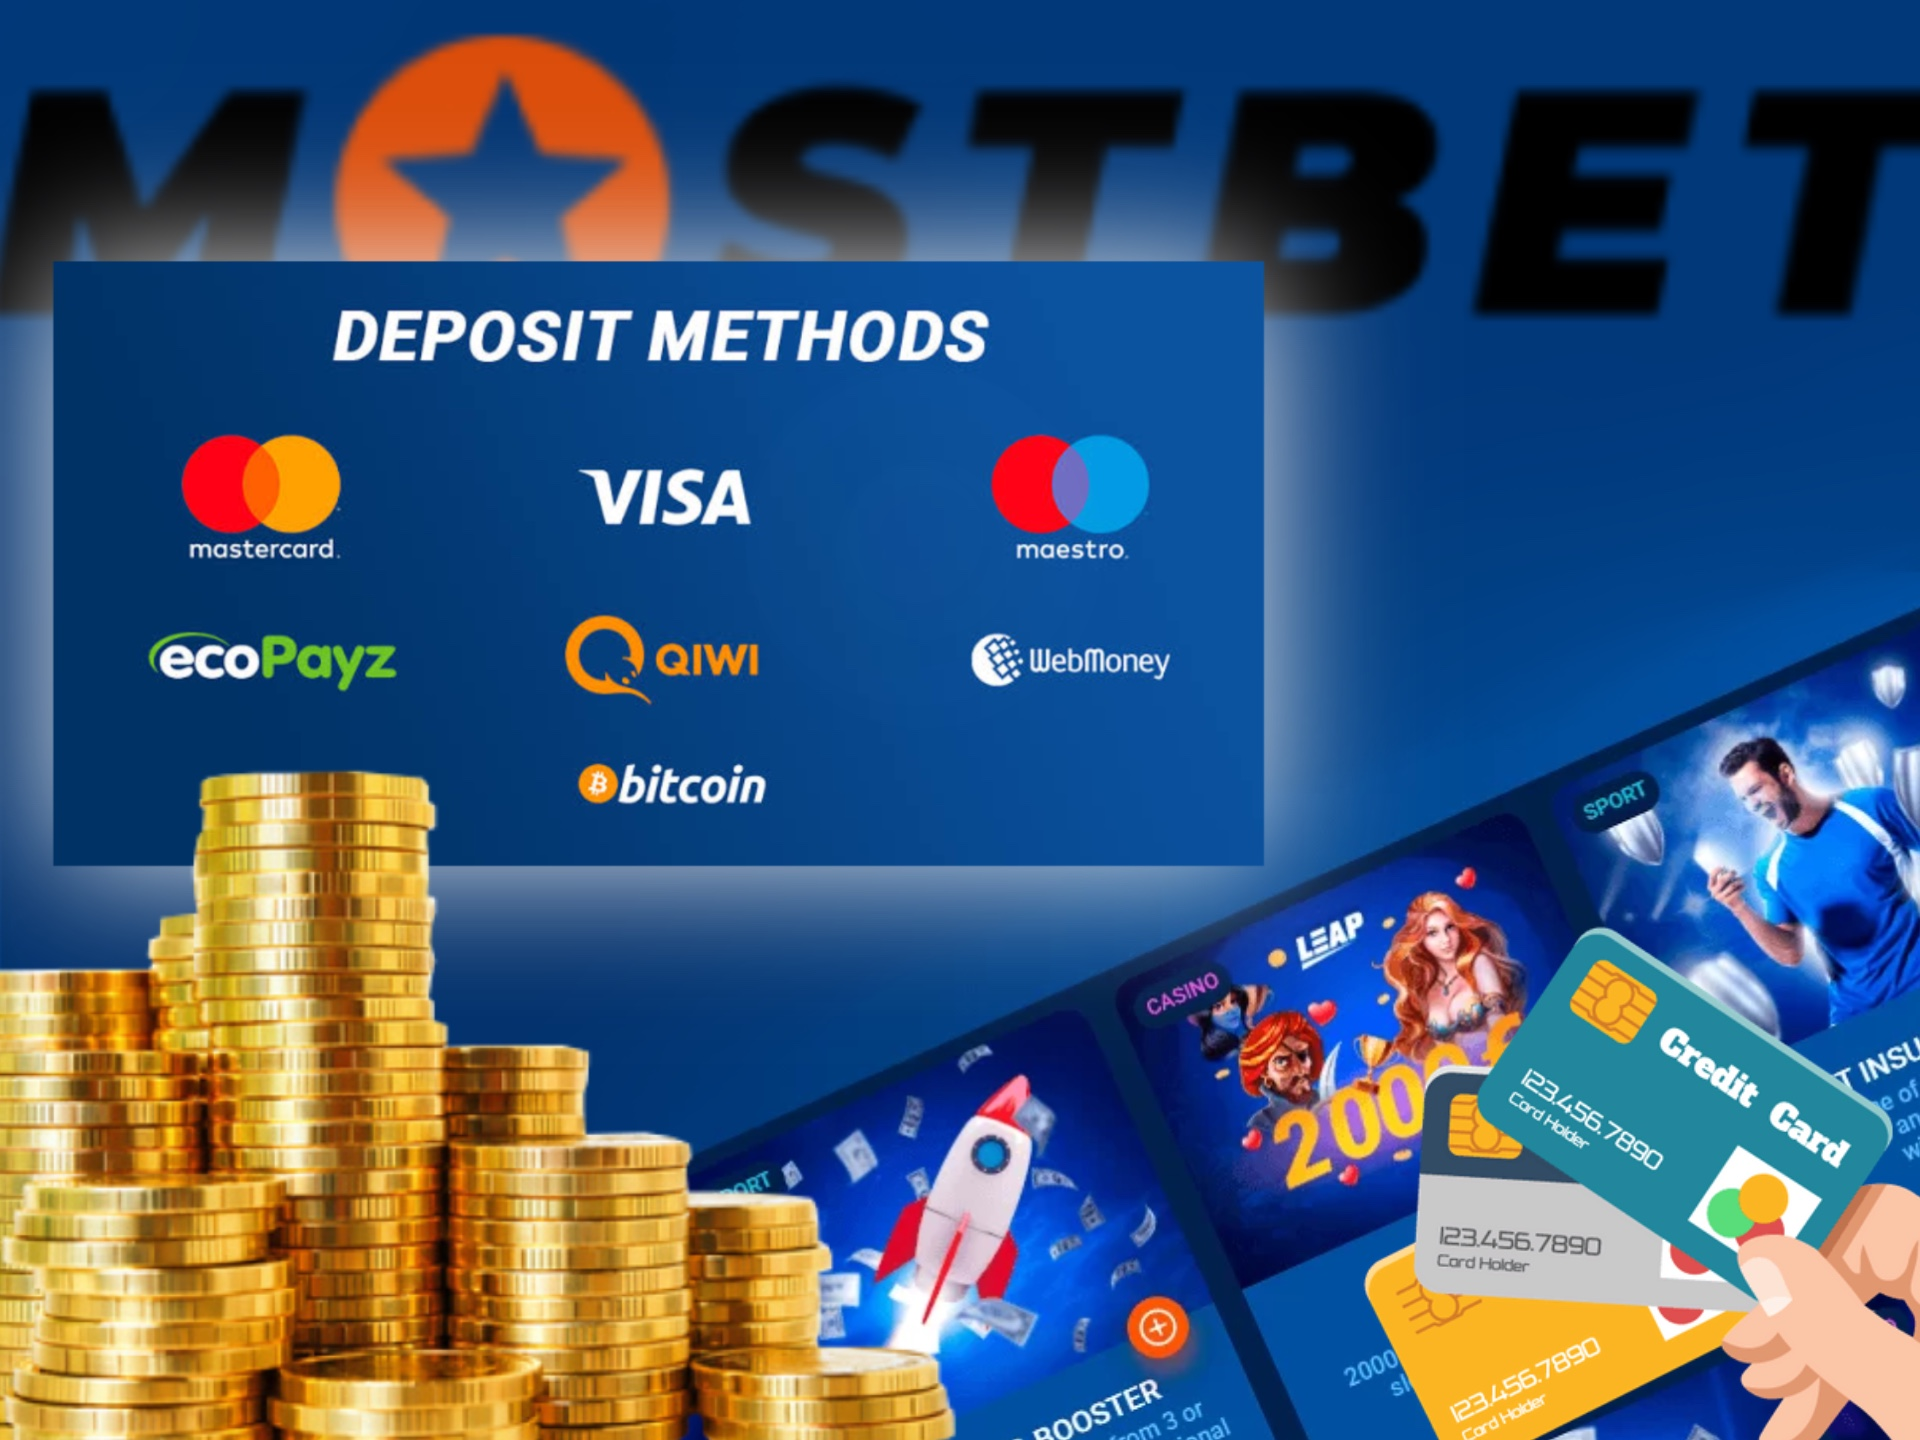 You can use ecoPayz, Paytm, Neteller or Neteller for depositing at Mostbet.